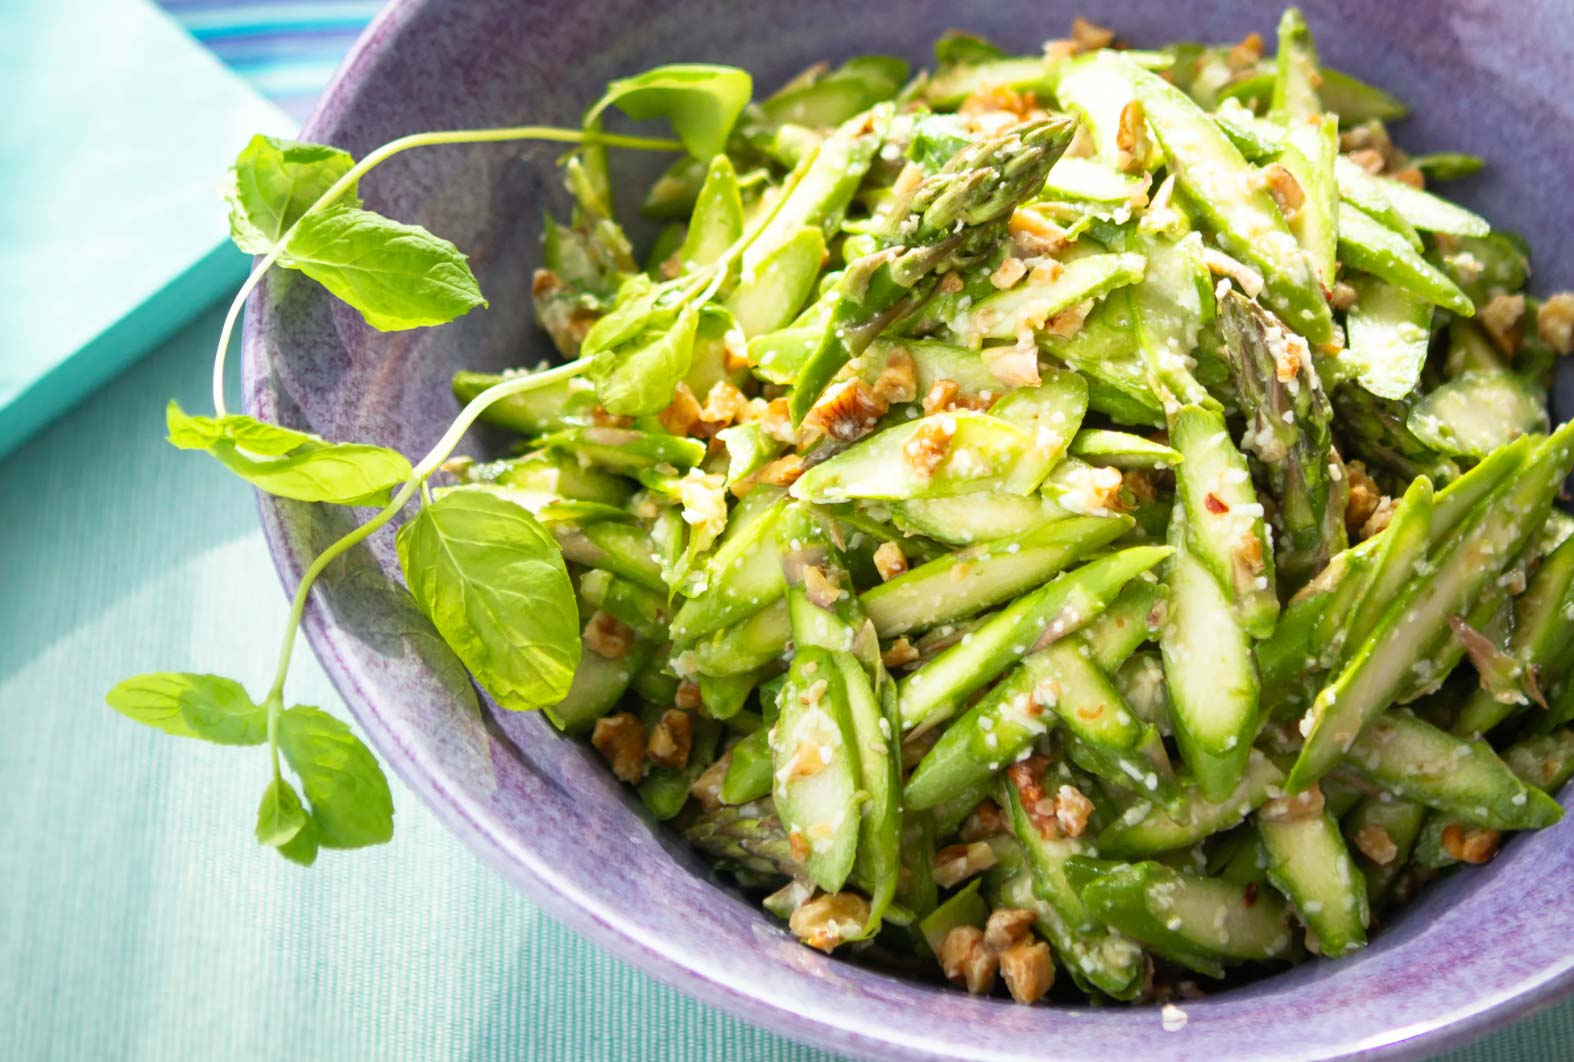 Low-carb asparagus salad with walnuts